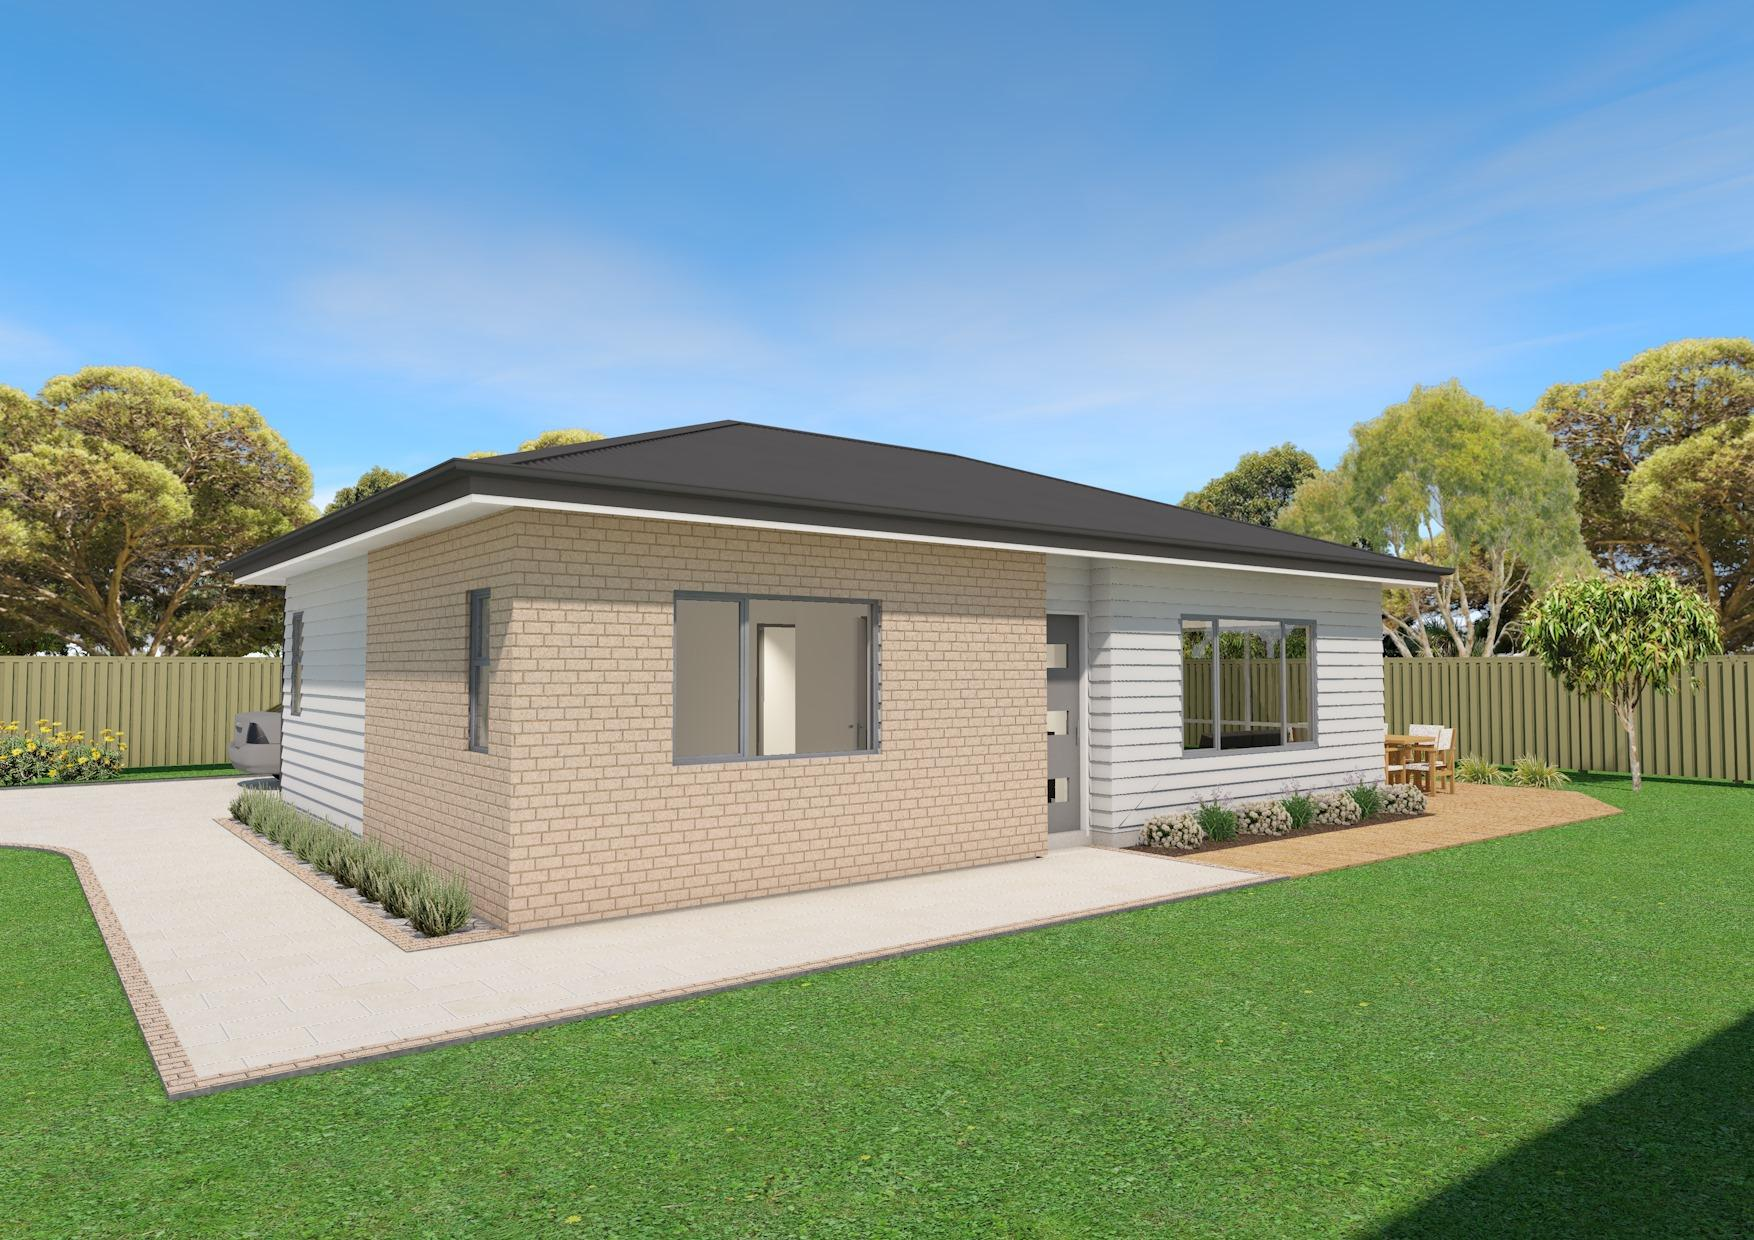 Preview Plans Kakapo 6 8185 2 Bdrm 1 Bath